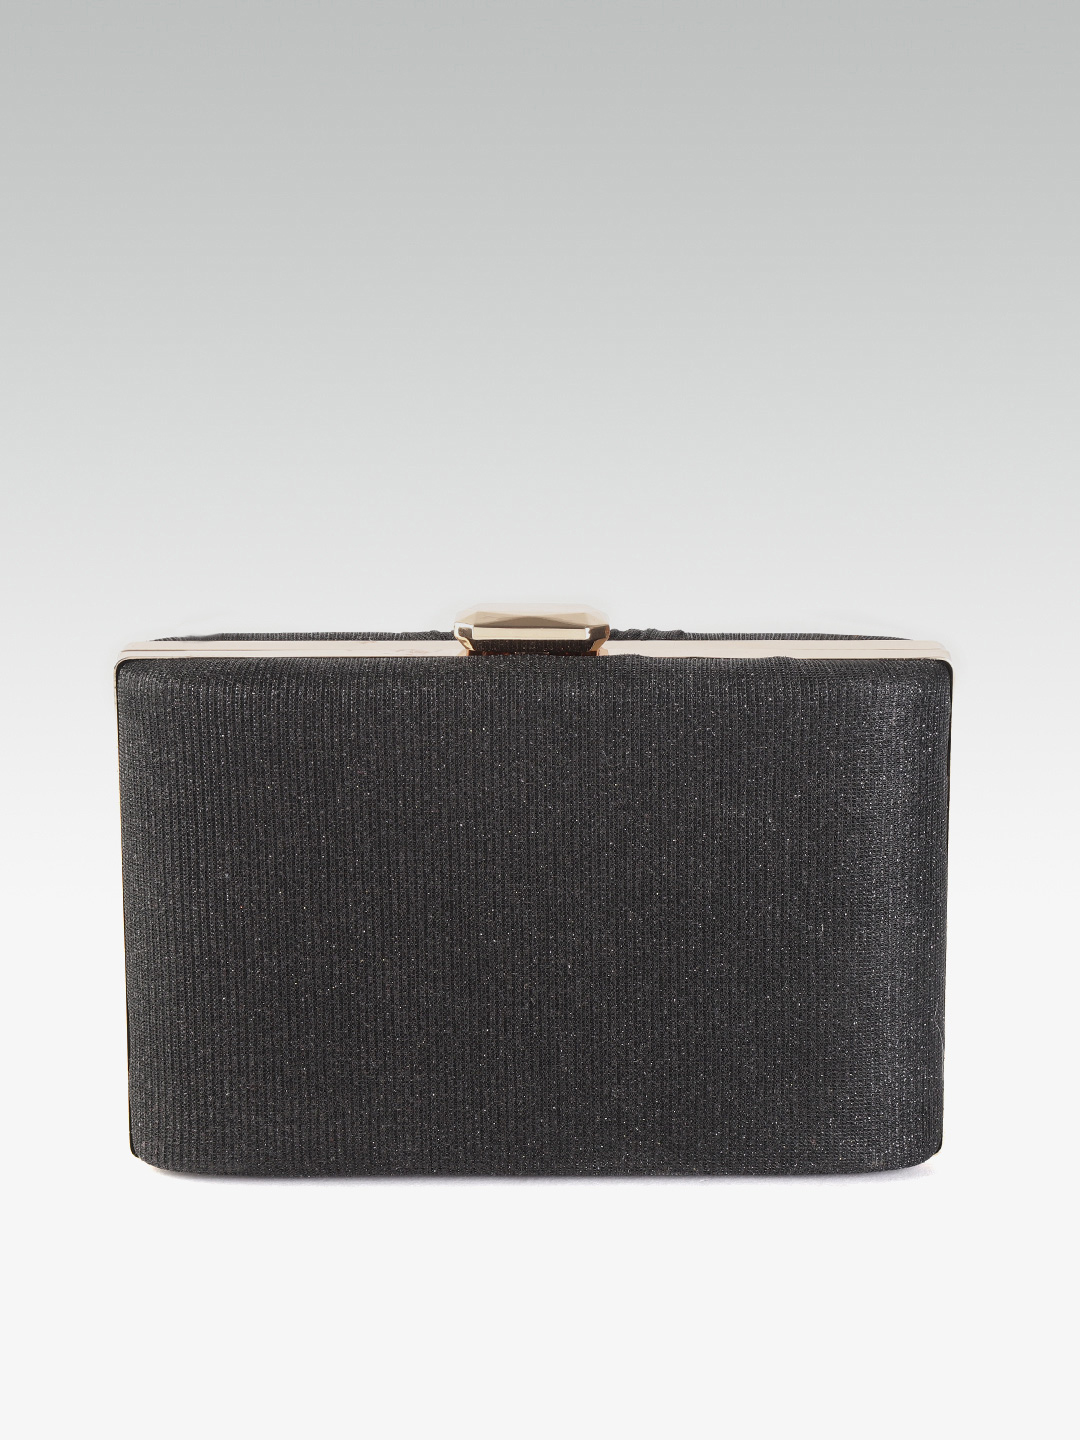 Clutches-Black Is Beautiful Box Clutch3